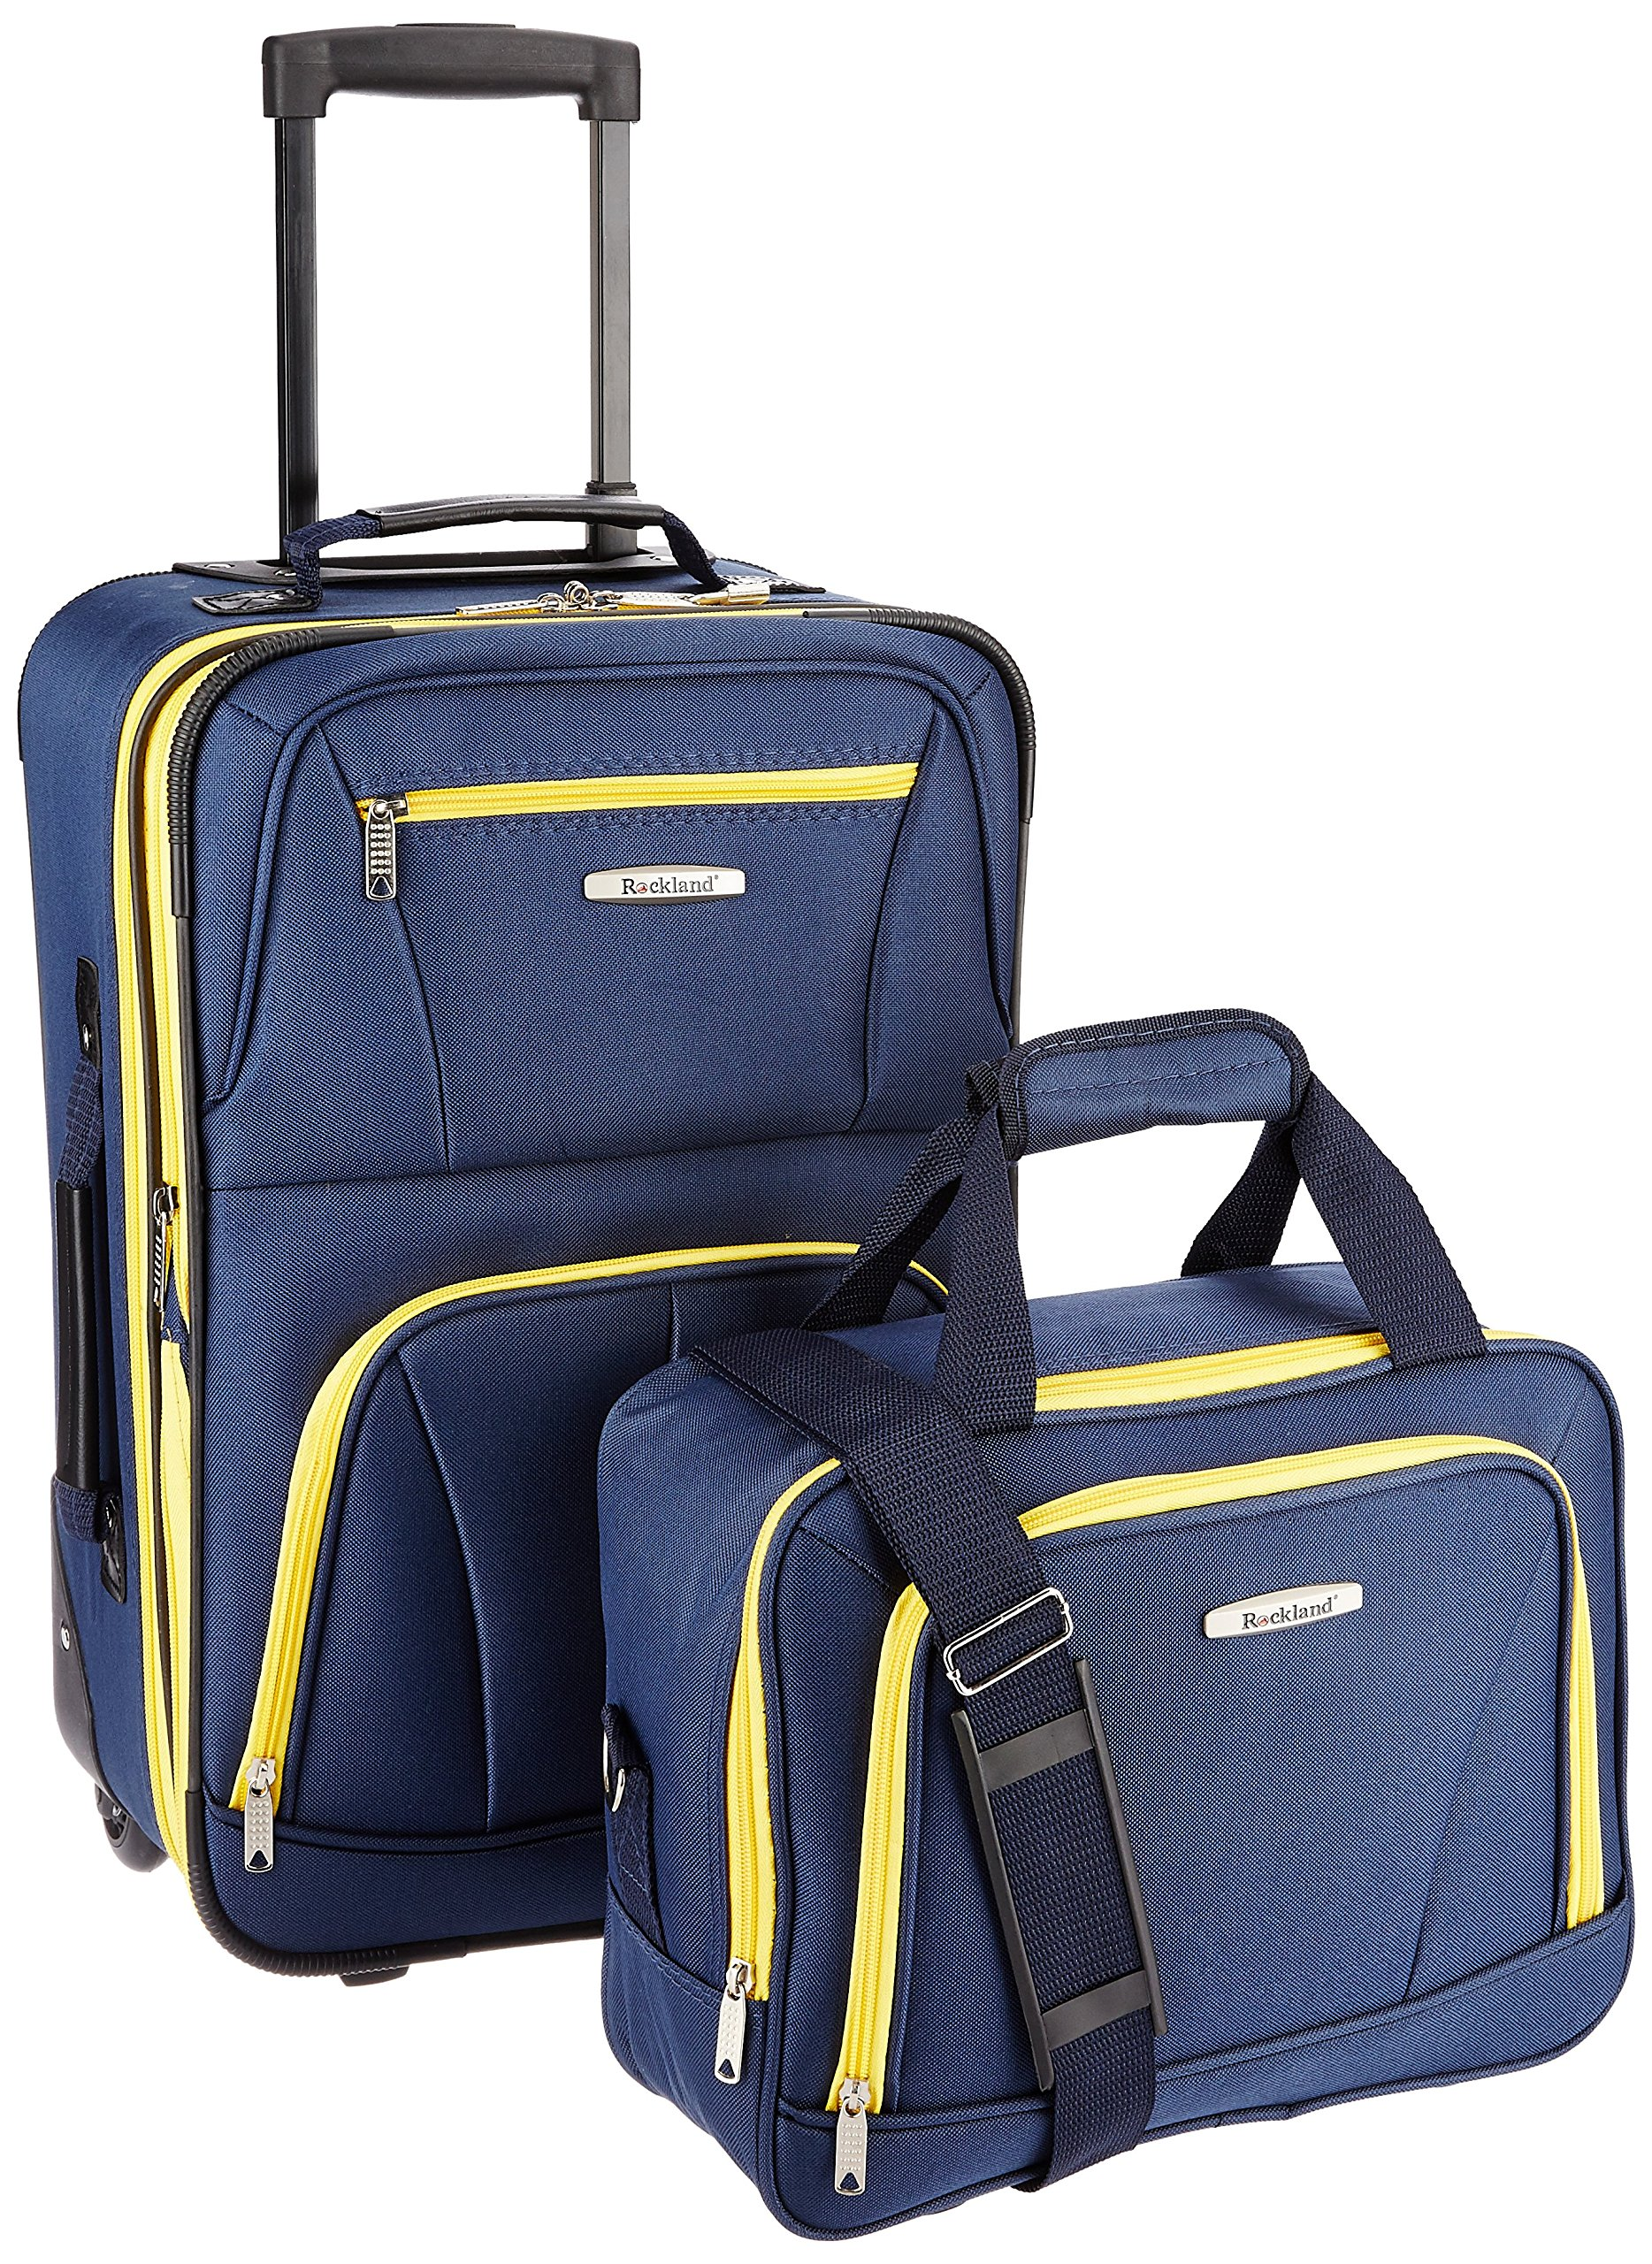 Rockland Luggage 2 Piece Set, Navy, One Size by Rockland